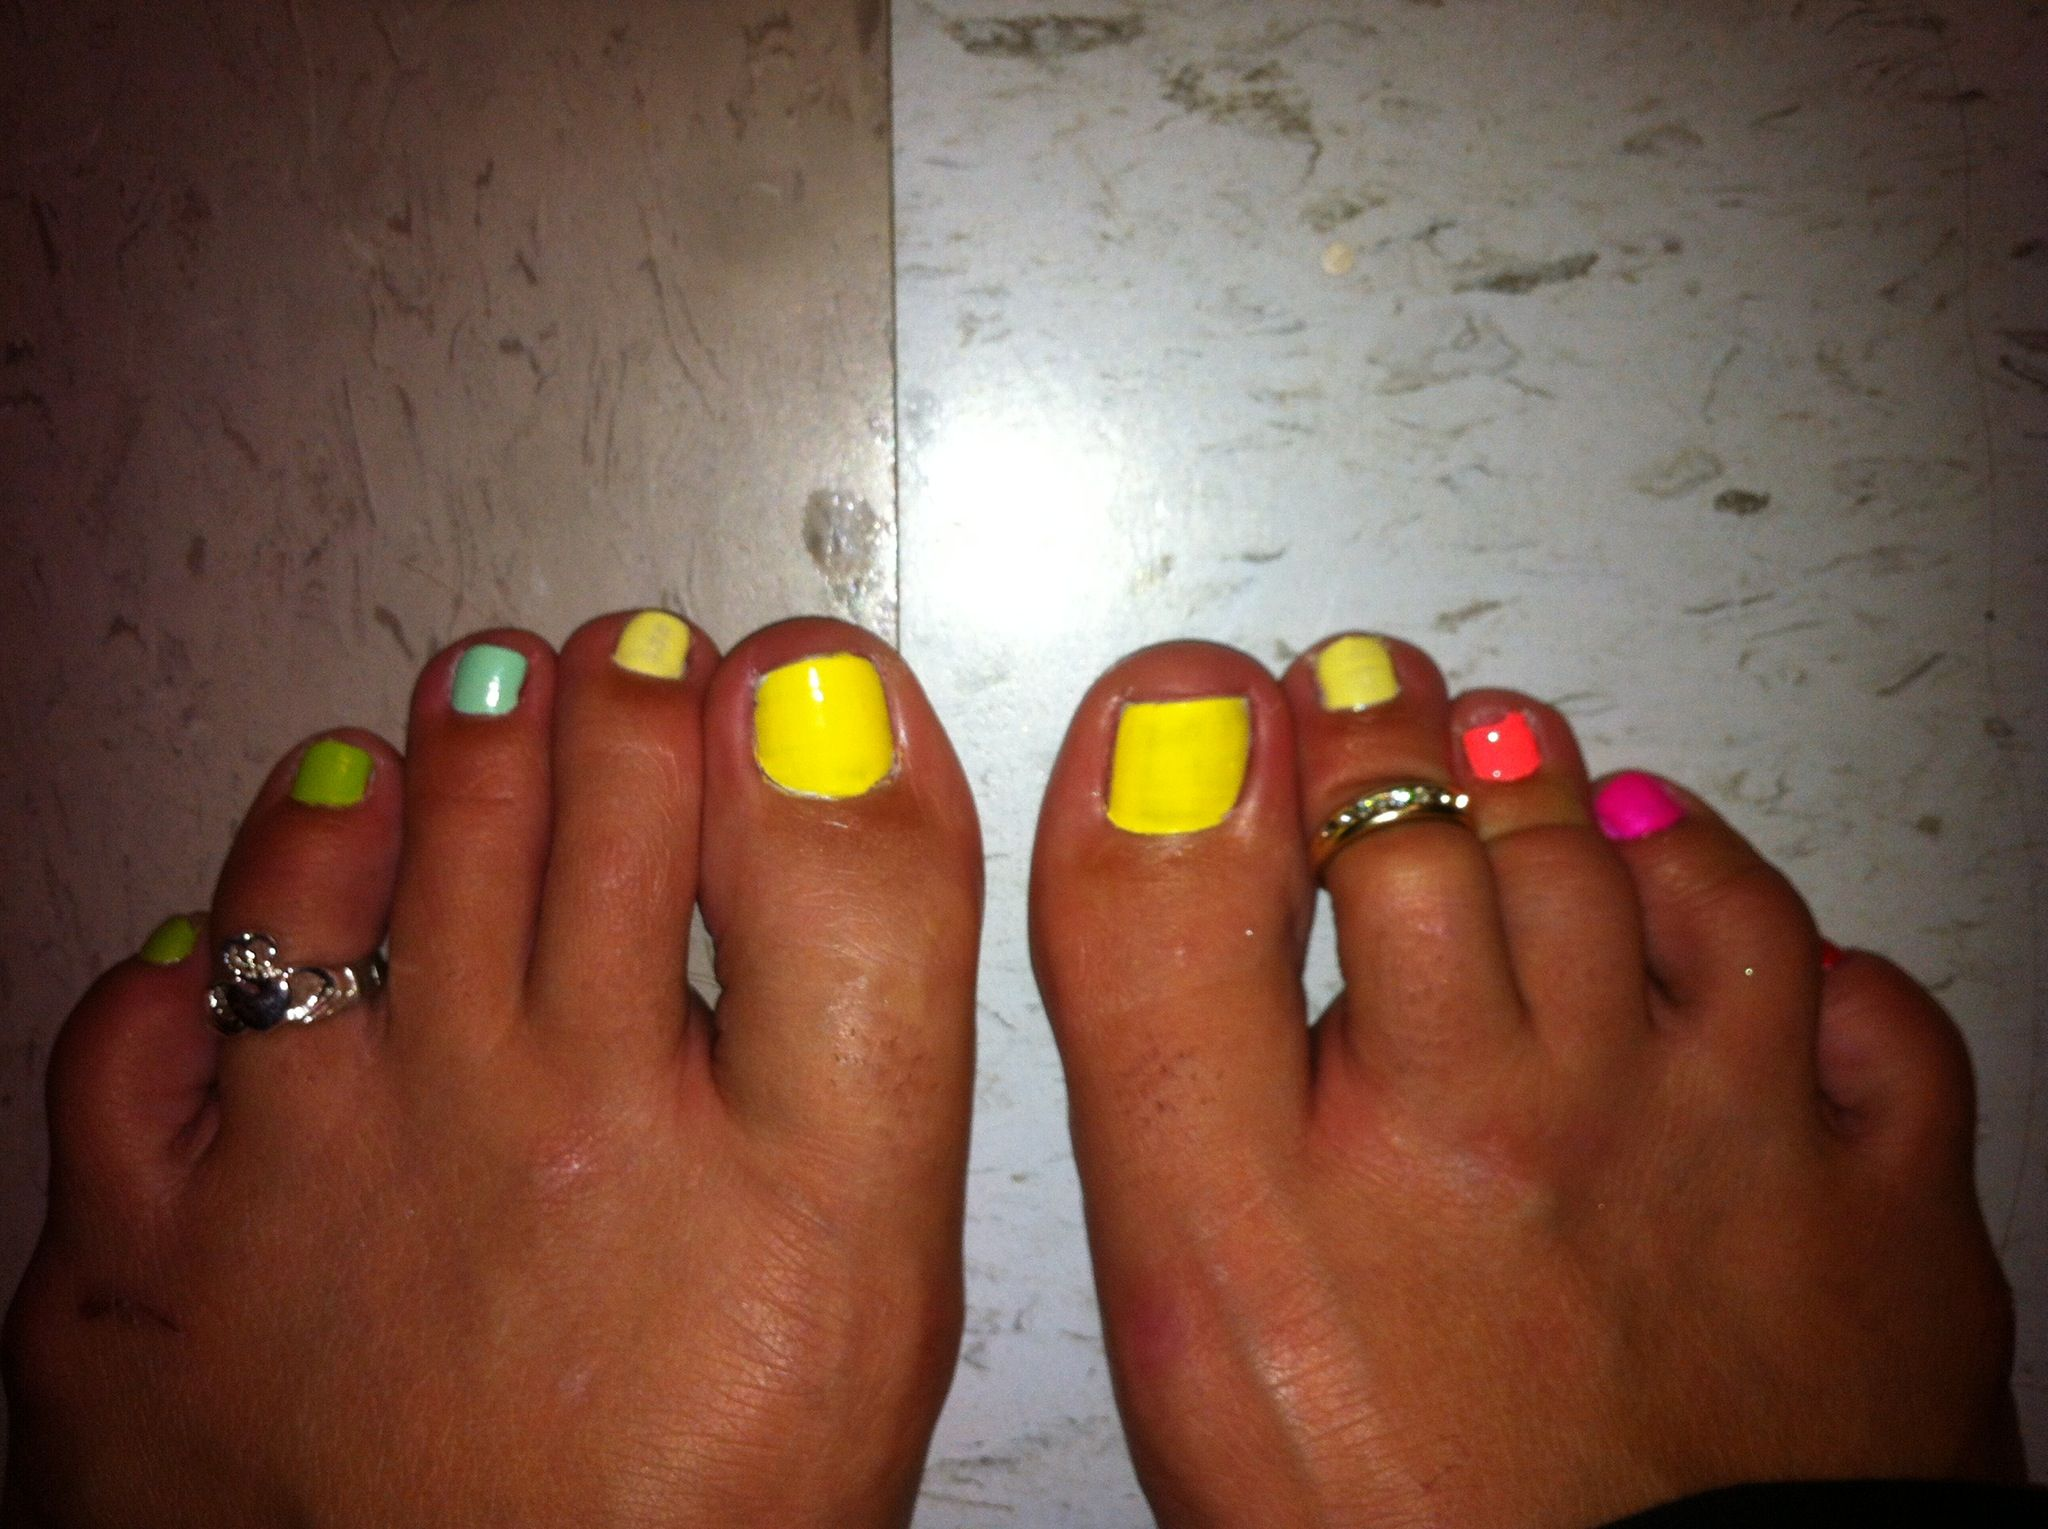 Multi colored nails (With images) | Nail art designs, Nail ...